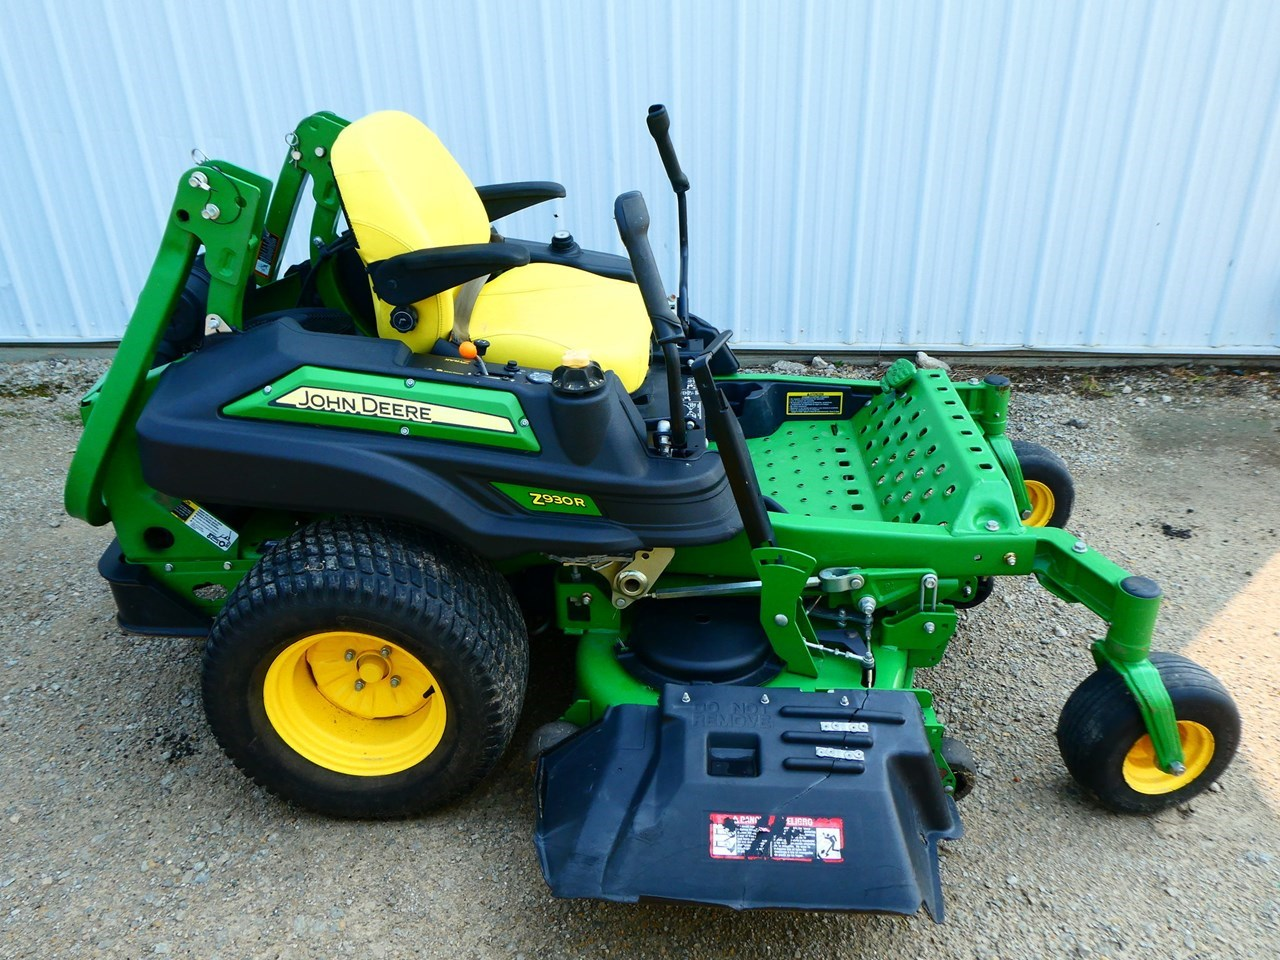 2015 John Deere Z930R Riding Mower For Sale